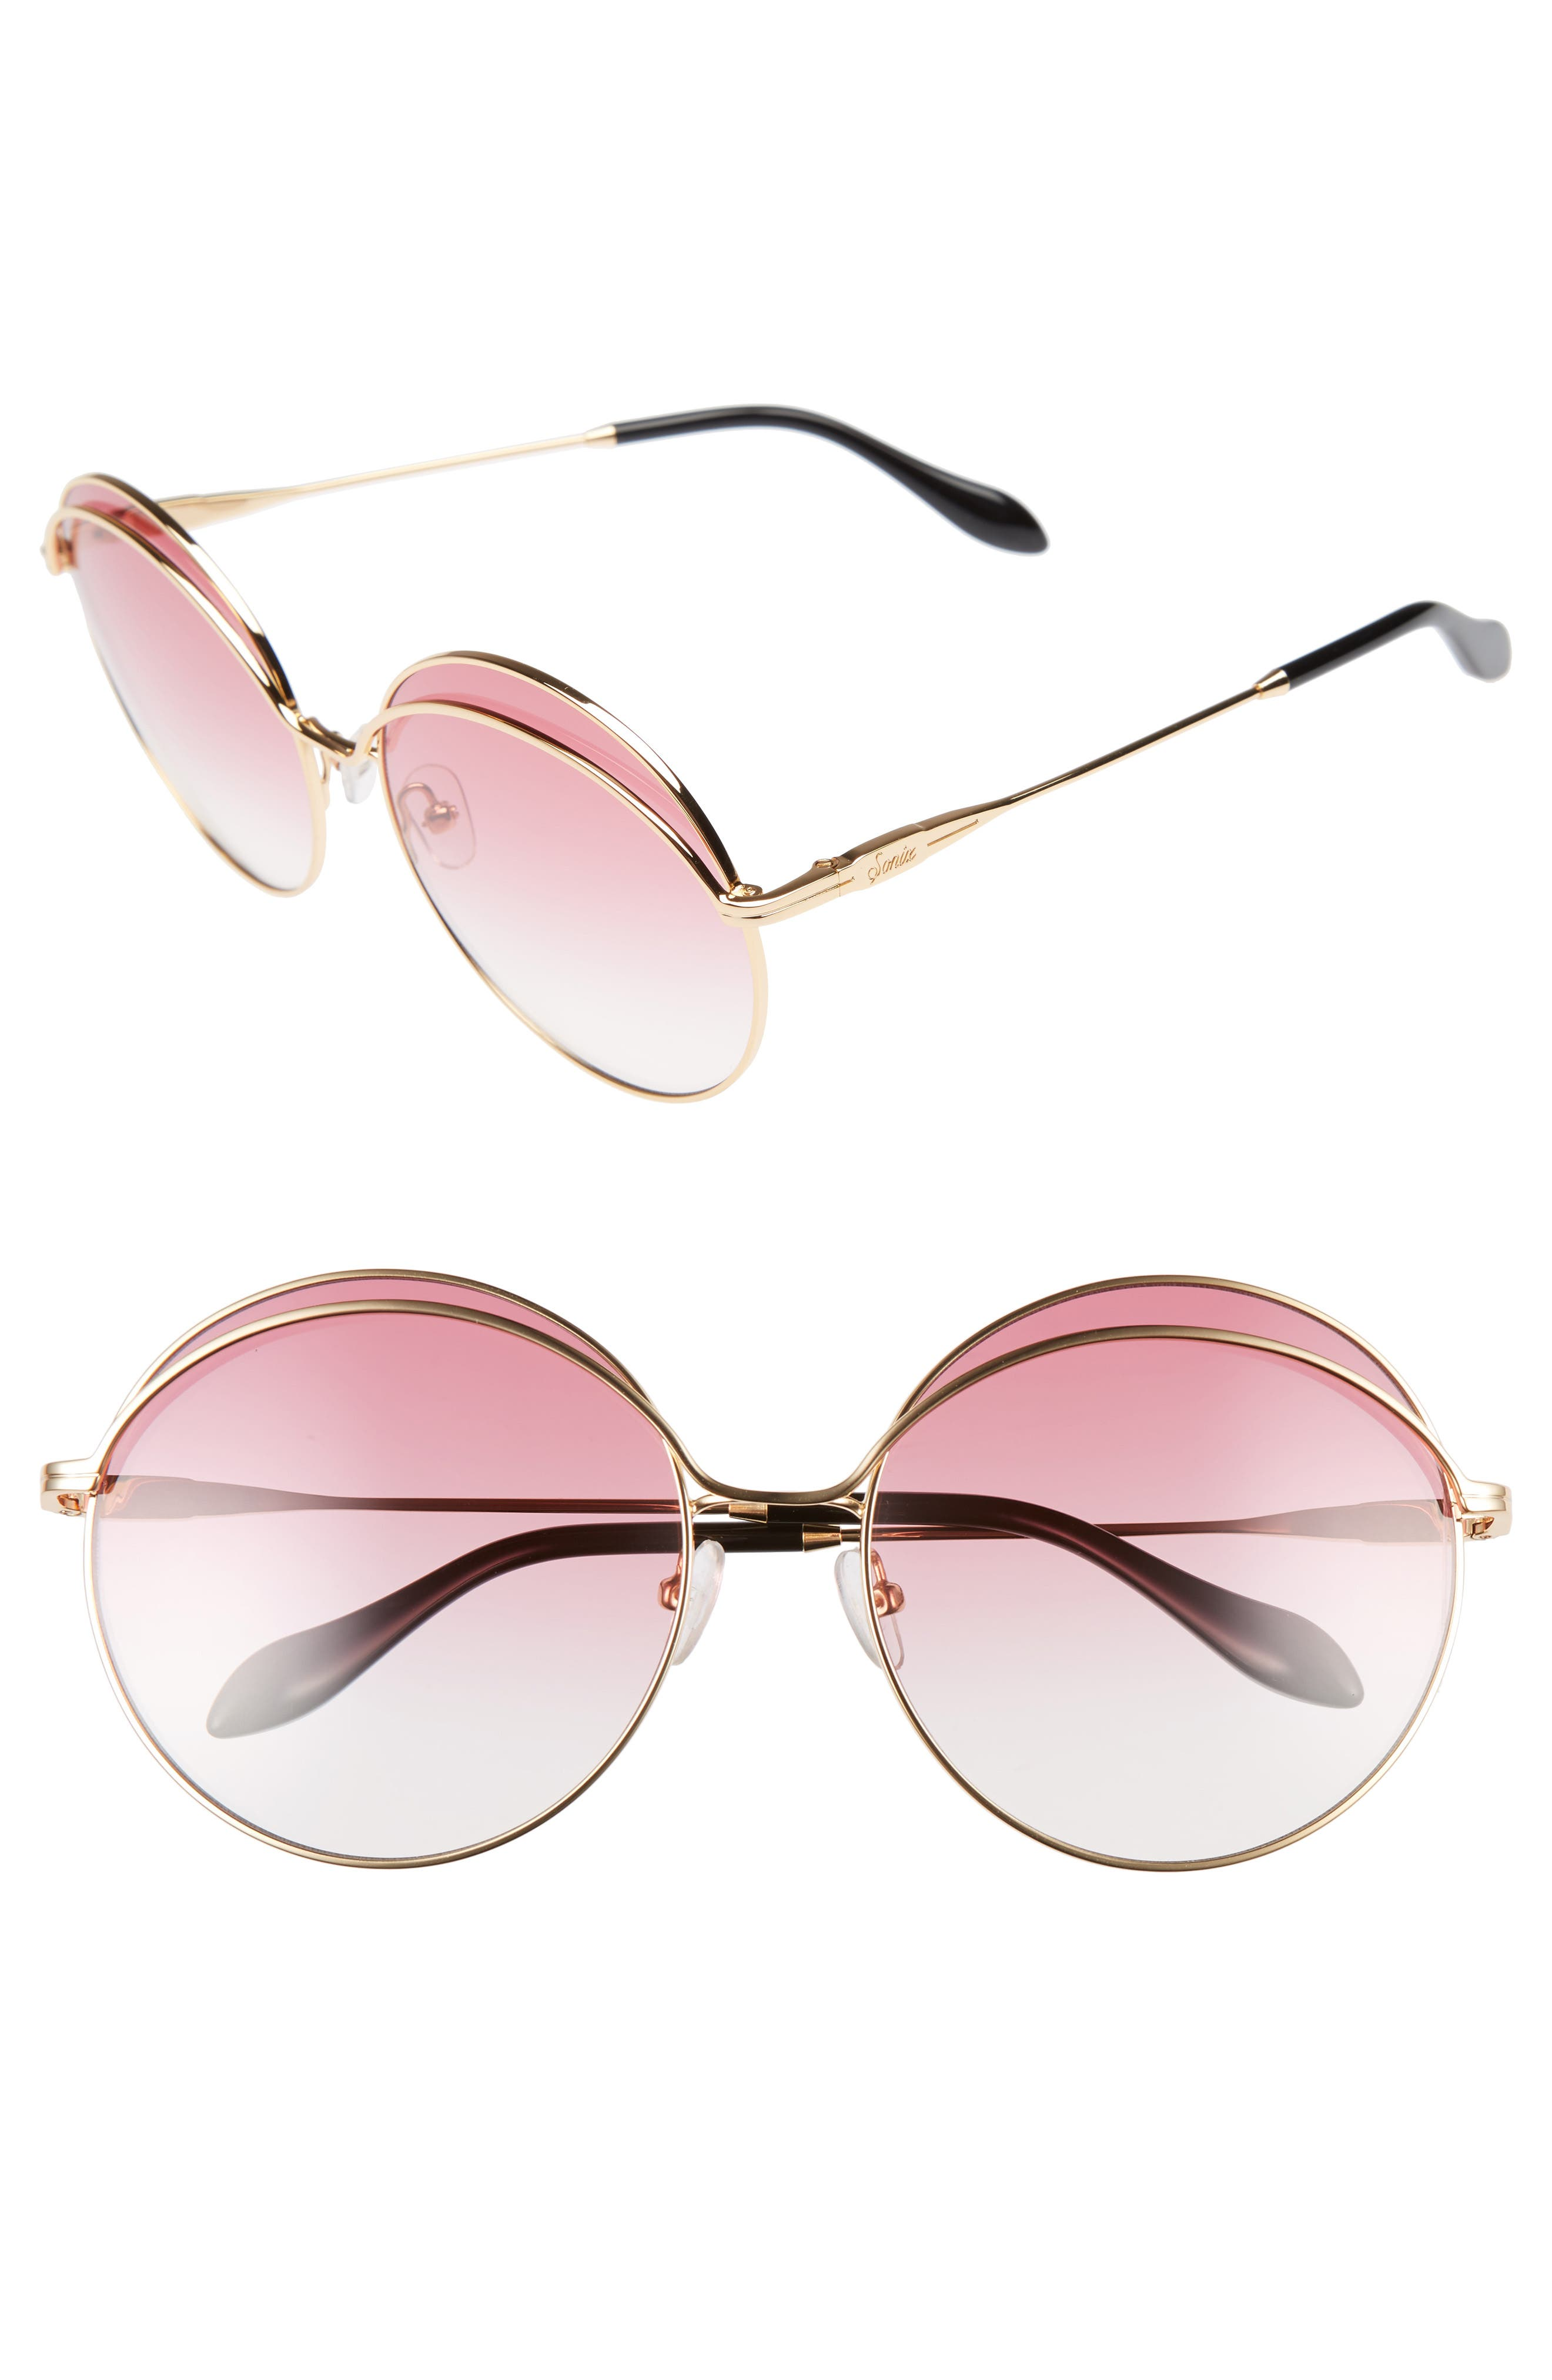 Sonix Oasis 63mm Round Sunglasses